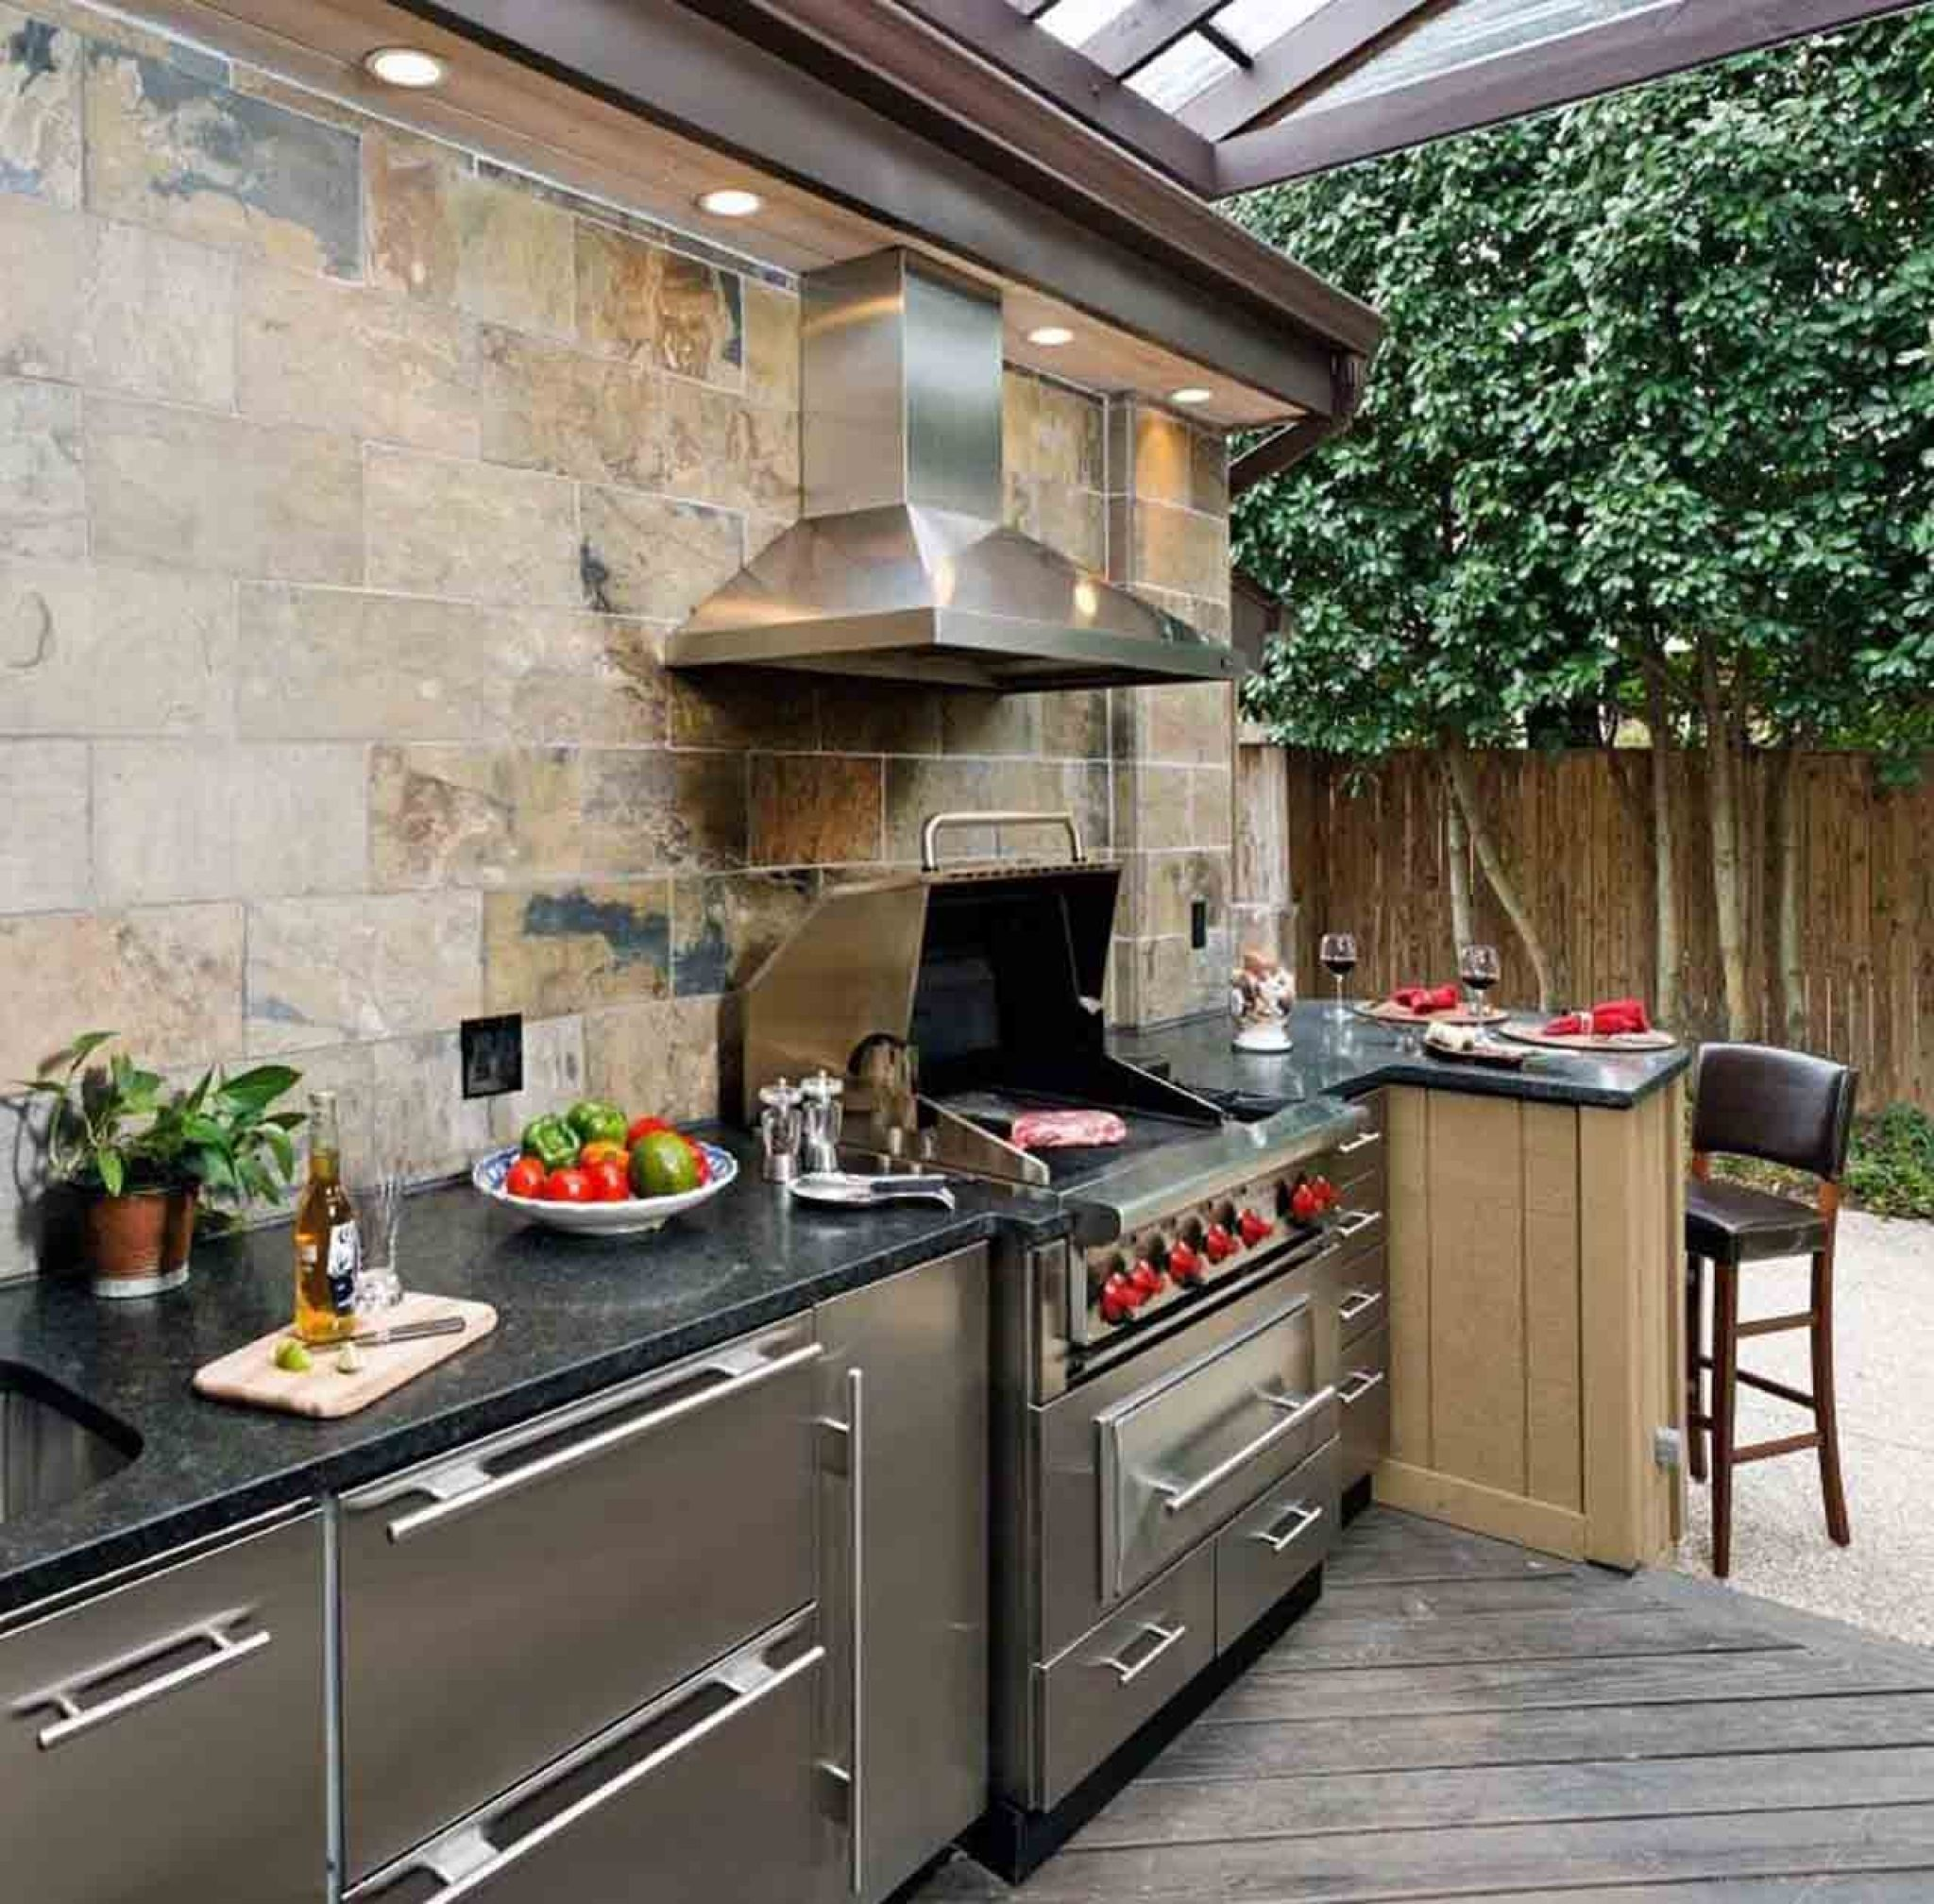 Modern Outdoor Kitchen Designs  Best Interior Wall Paint Check Simple Outdoor Kitchen Layout 2018